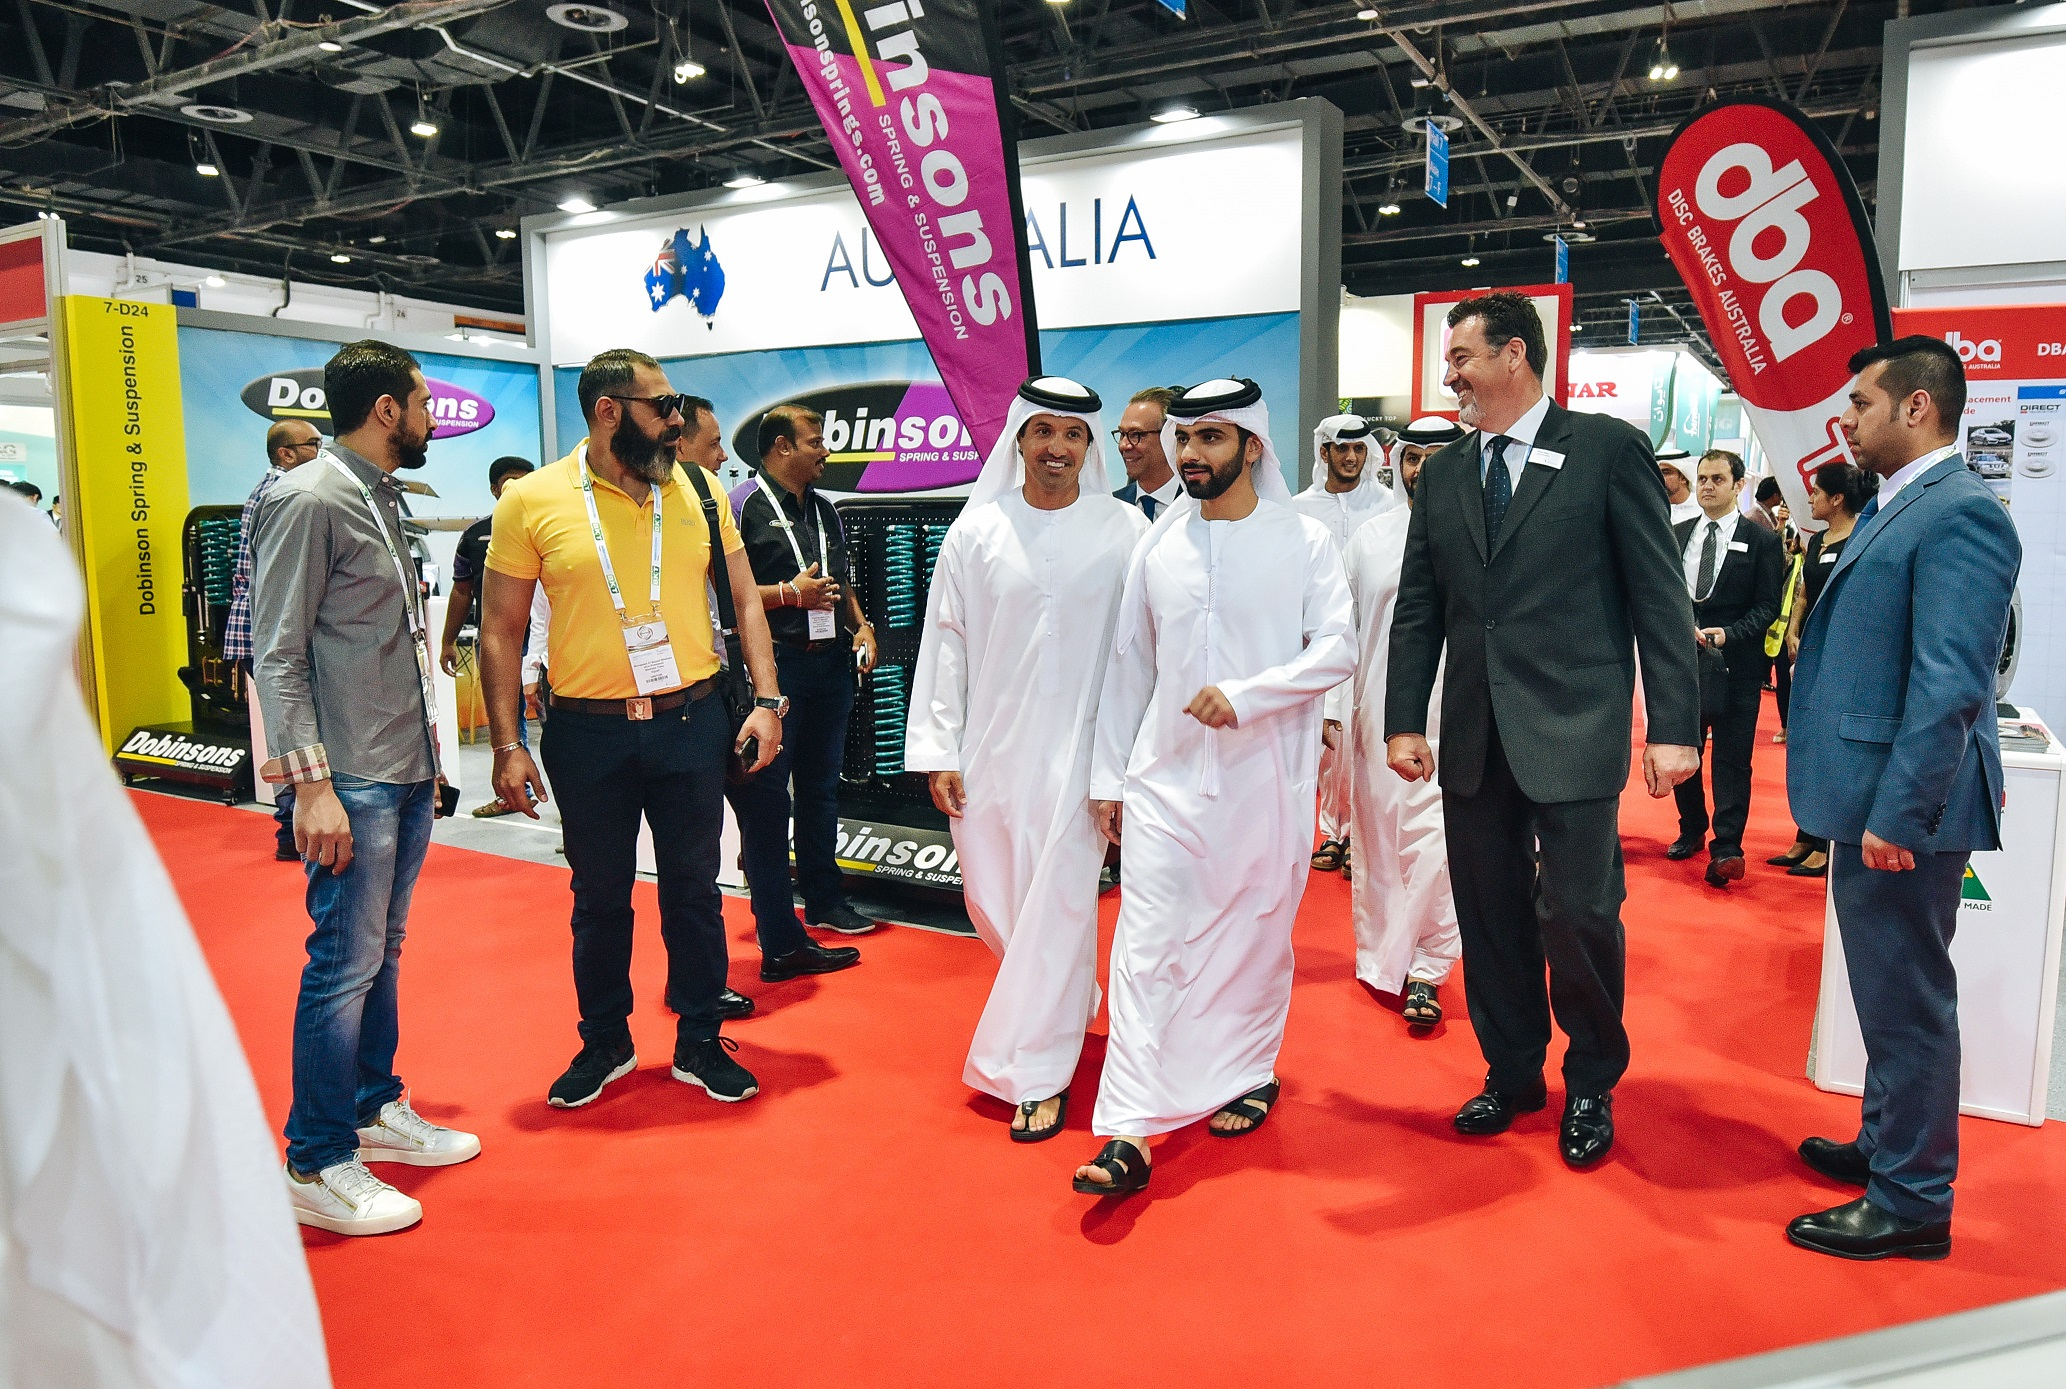 His Highness Sheikh Mansoor Opens Automechanika Dubai 2019 Construction Business News Middle East